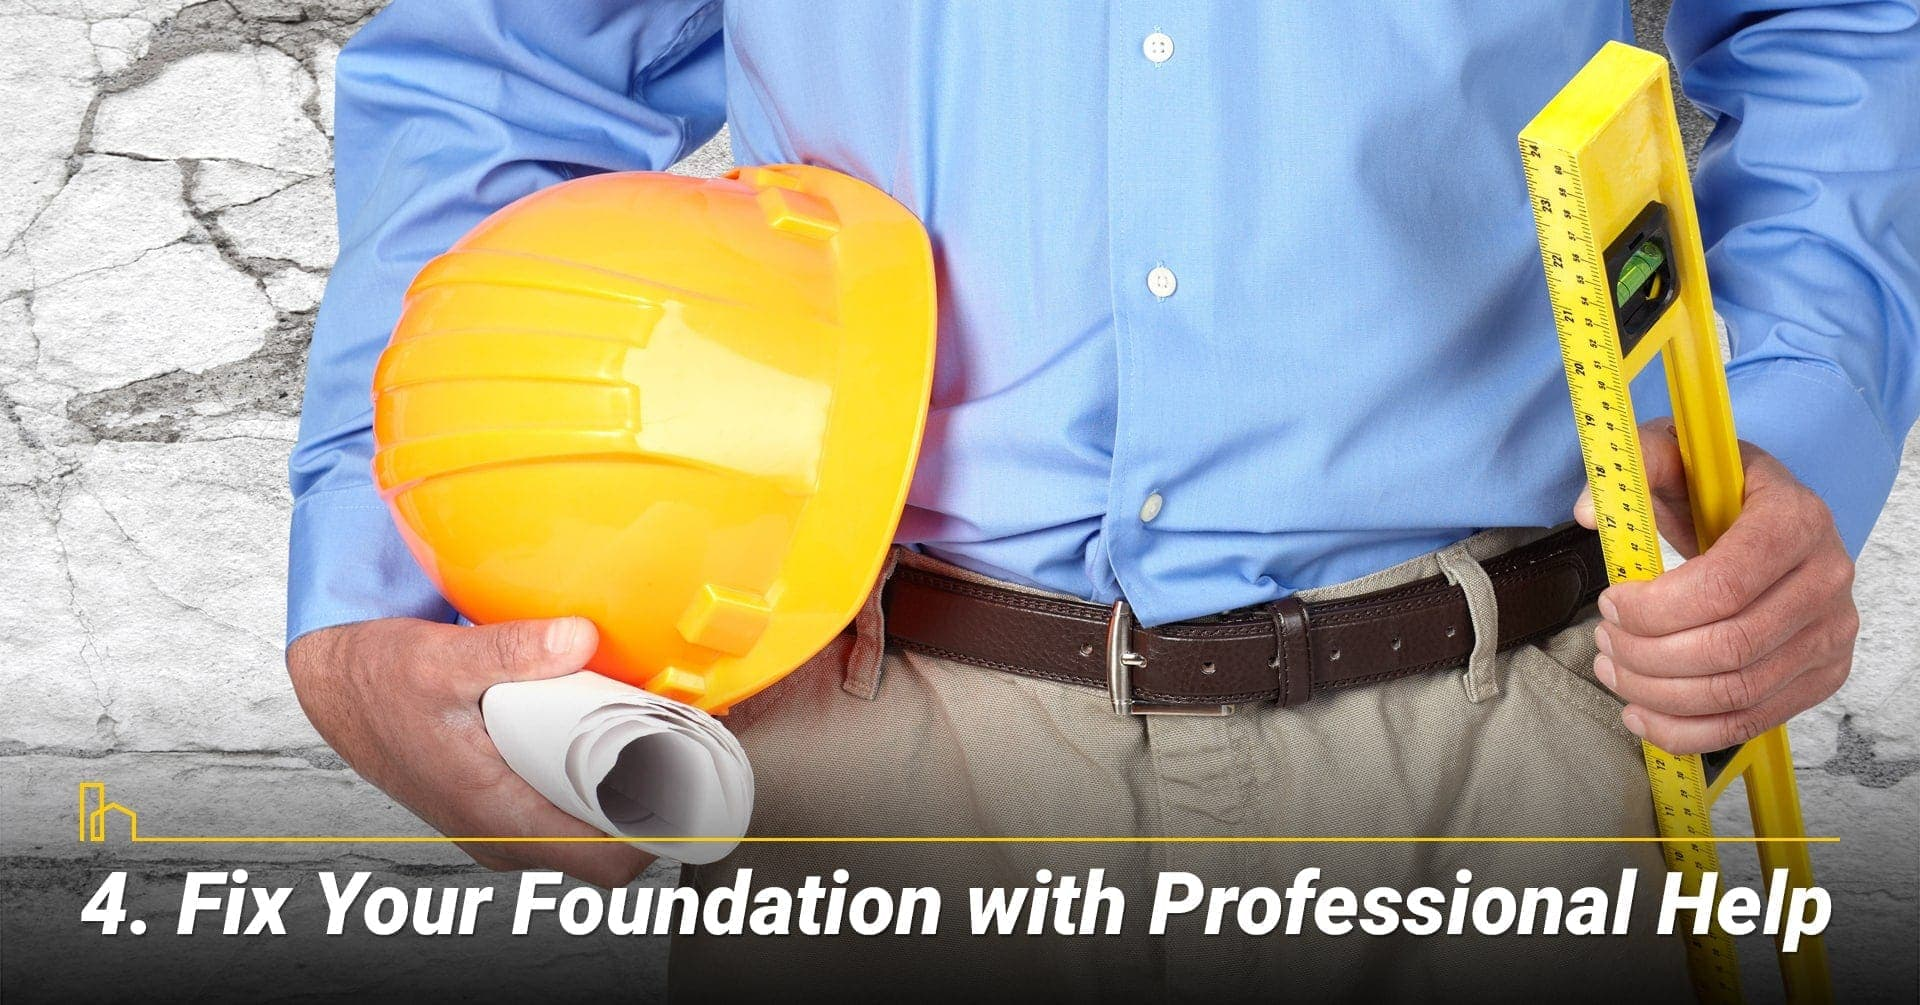 Fix Your Foundation with Professional Help, get the professional to fix it